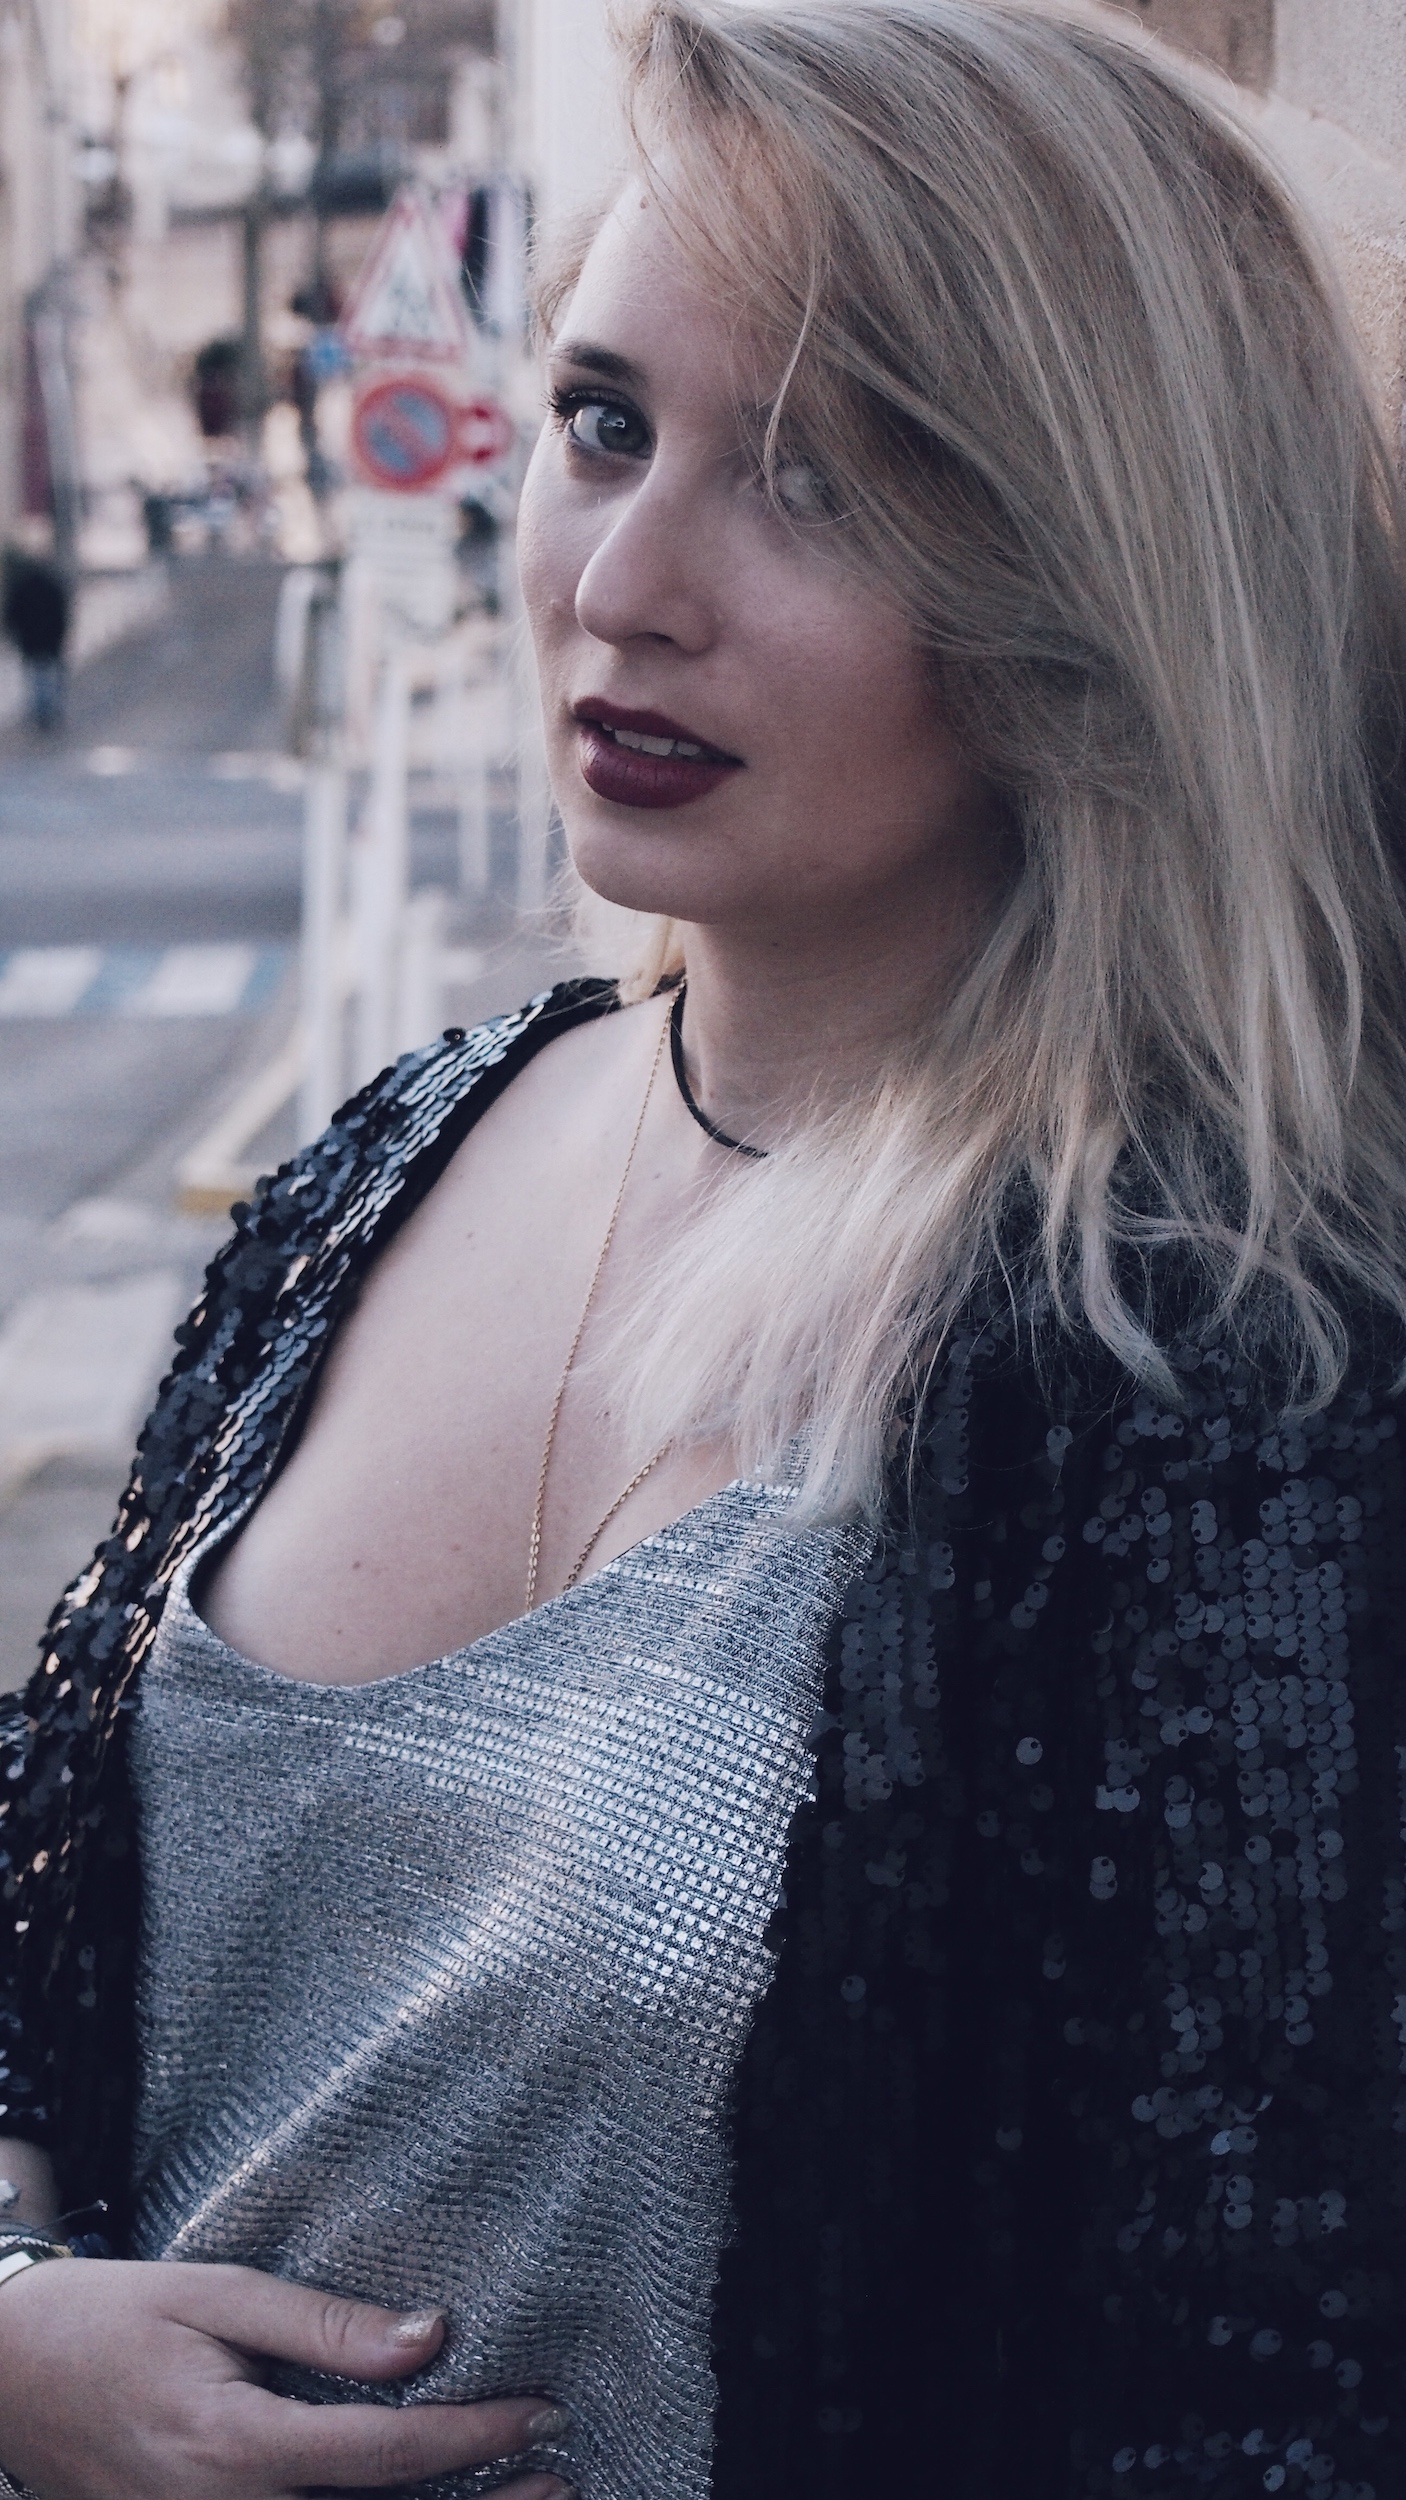 new-look-ootd-babou-sequin-silver-denimOLYMPUS DIGITAL CAMERA Processed with VSCO with c4 preset